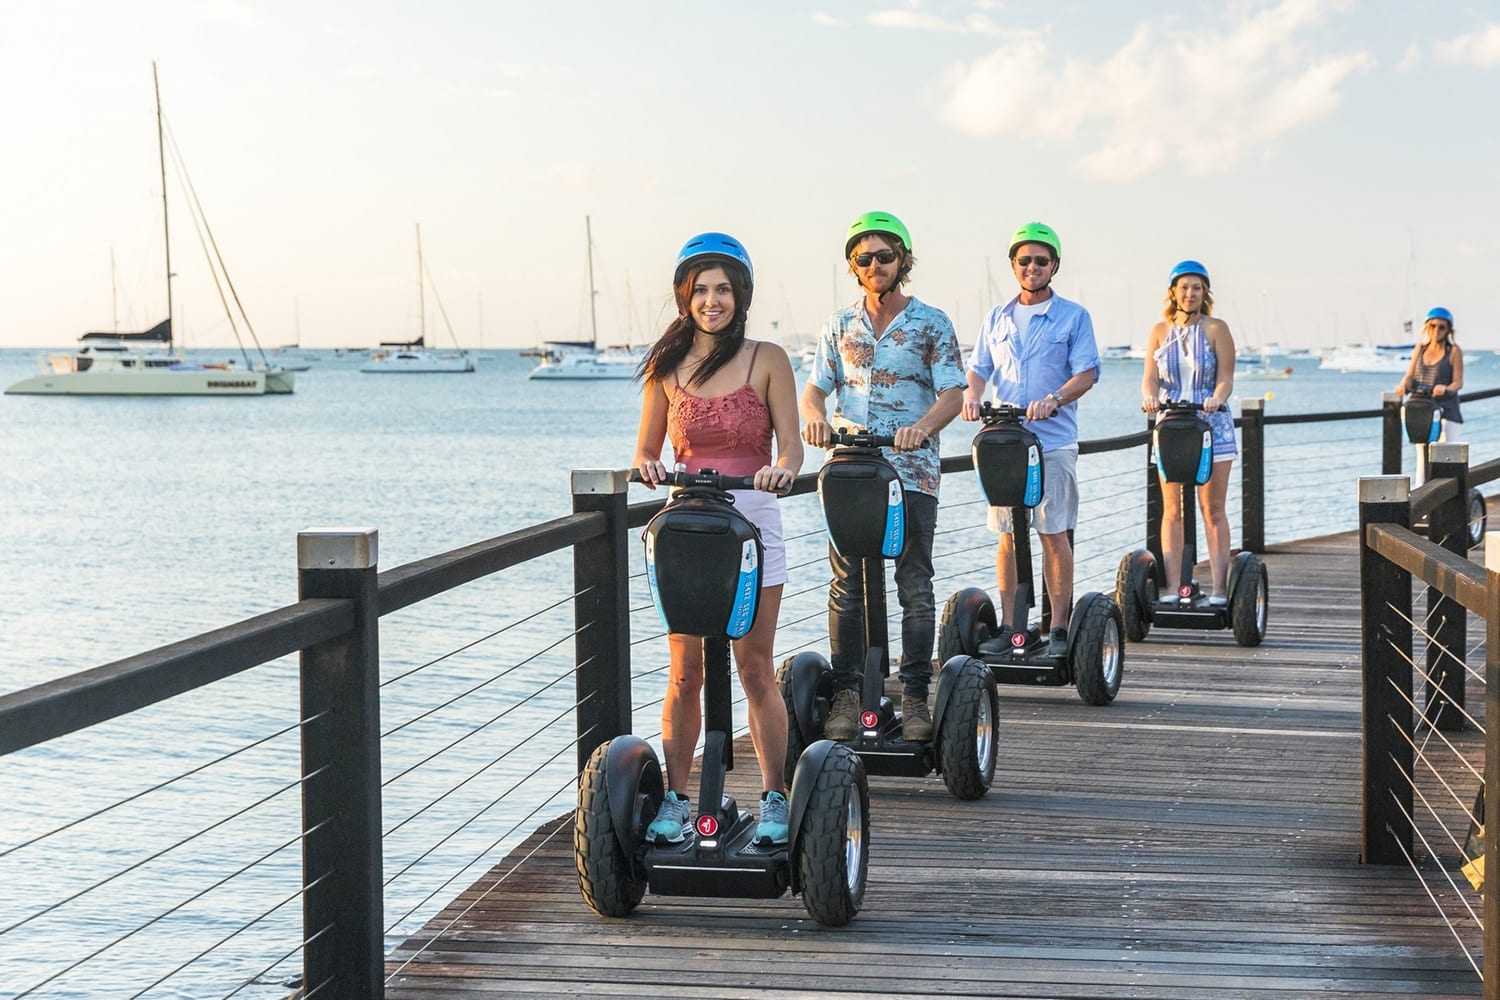 Segway Sunset and Boardwalk Tour including Dinner